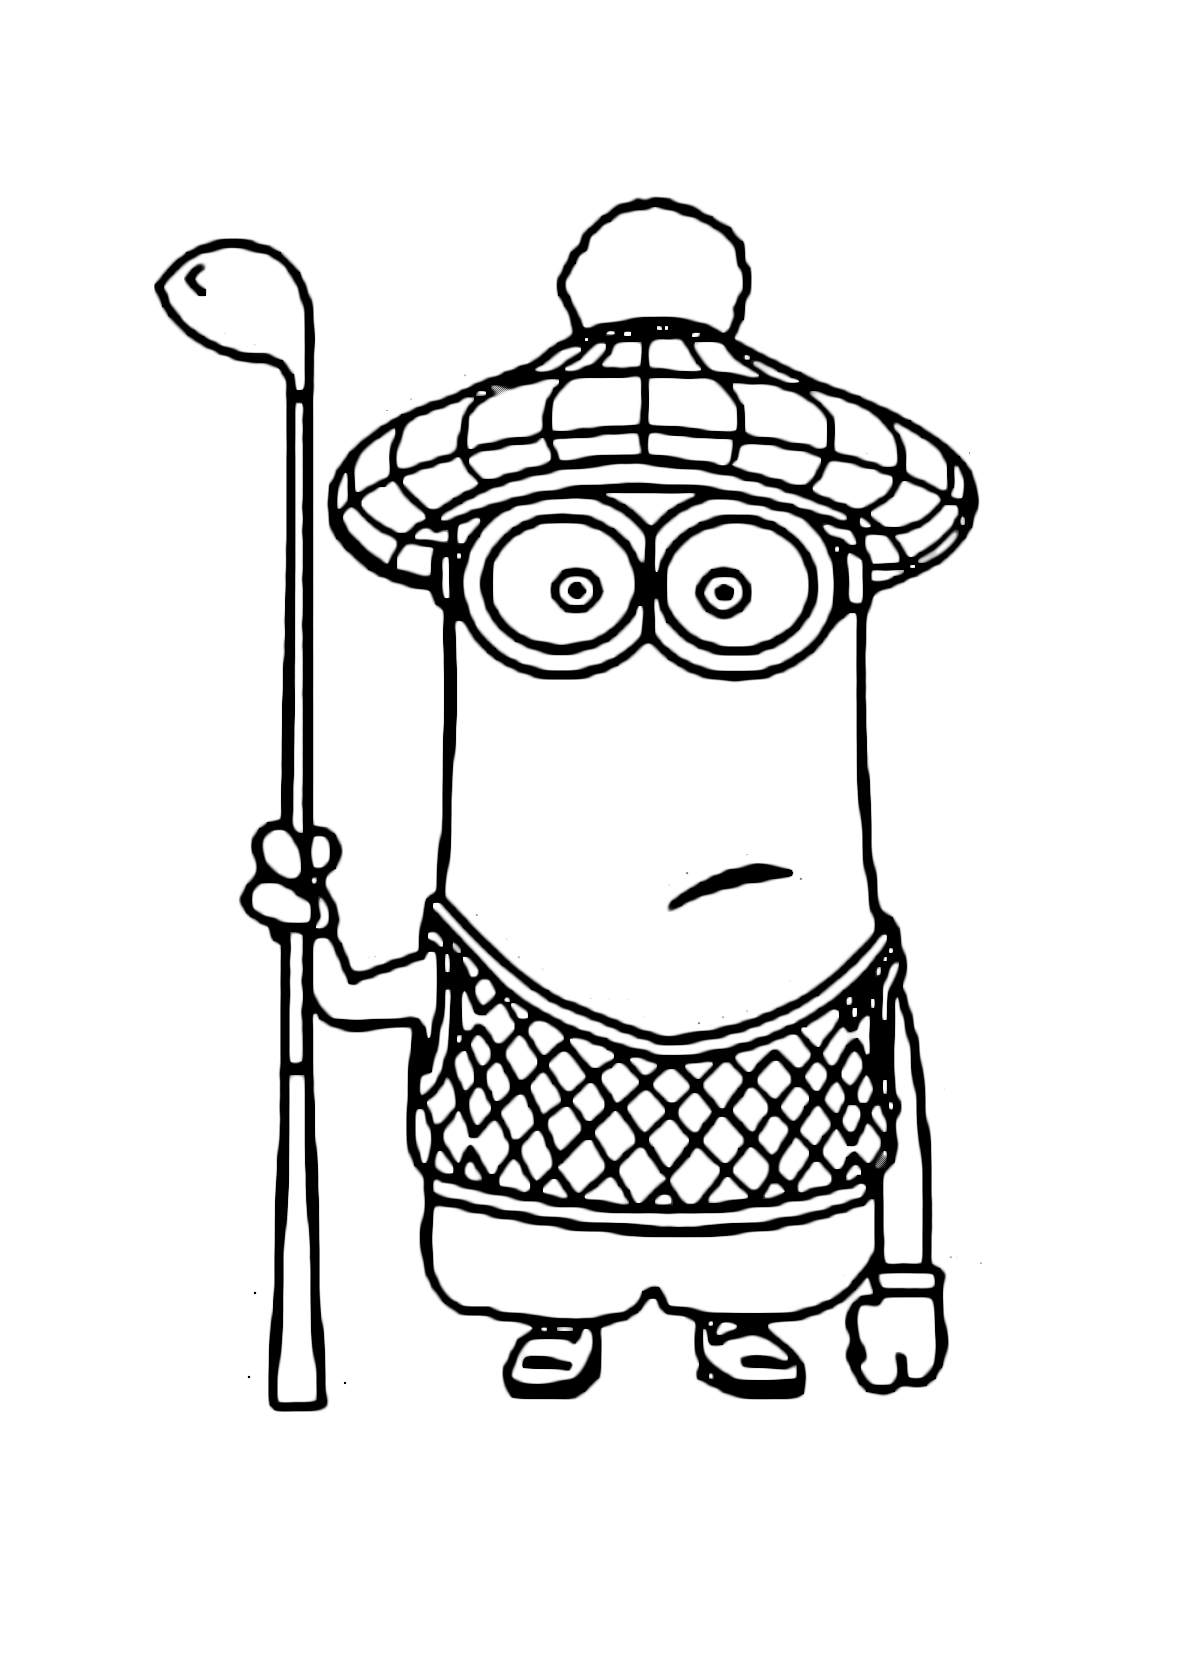 minion golf coloring page play golf in the summer sports coloring pages coloring coloring golf minion page